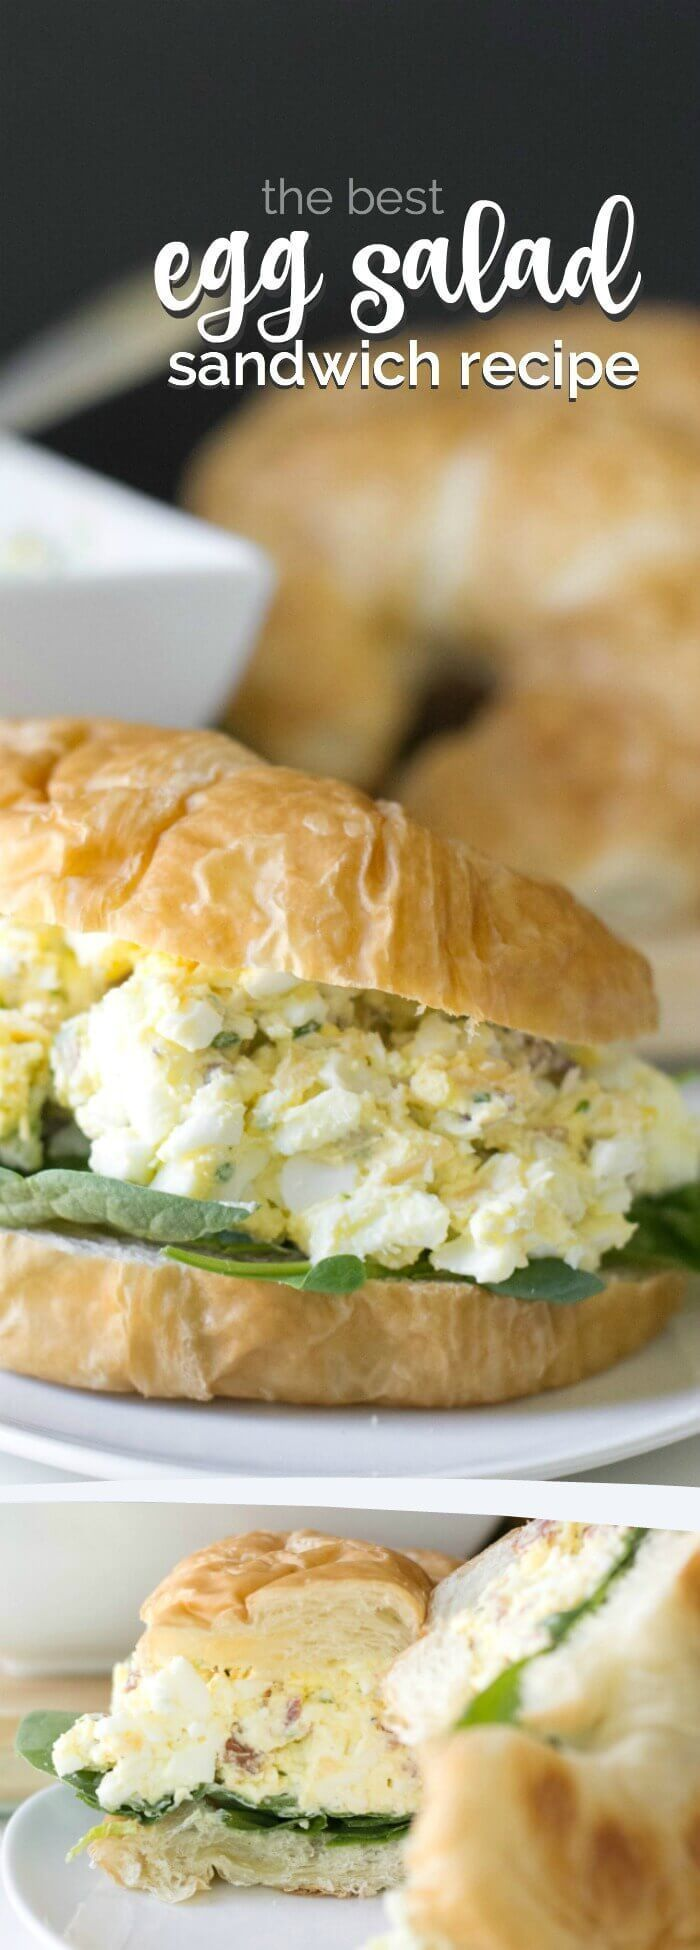 The Best Egg Salad Sandwich Recipe via @spaceshipslb